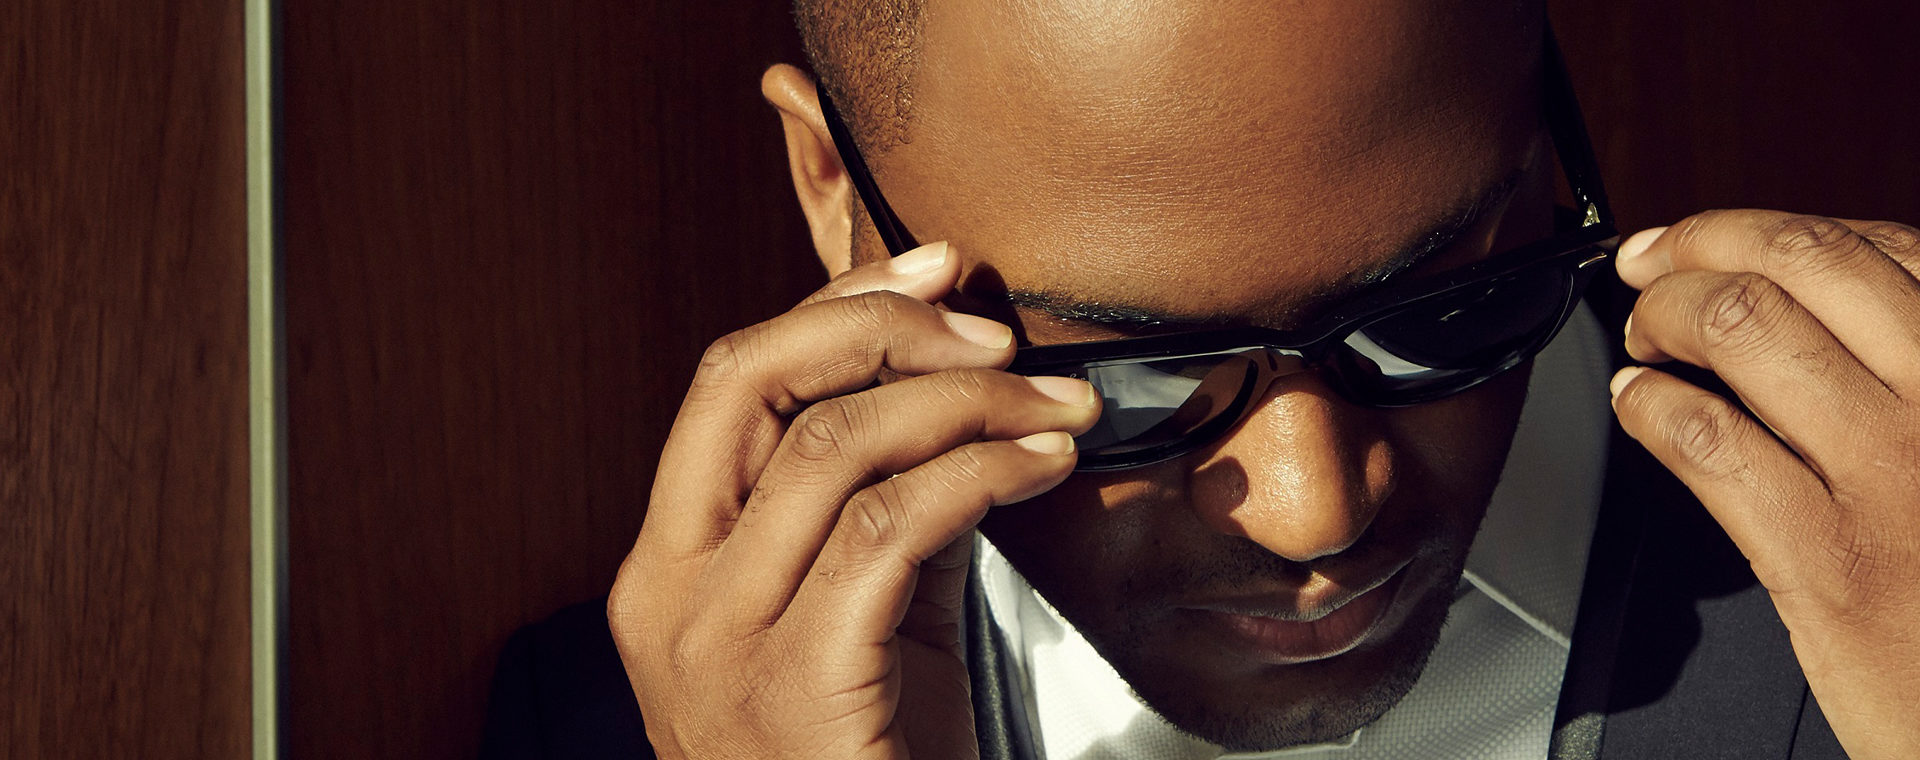 LATEST ISSUE <br><b>Taio Cruz</b></br>